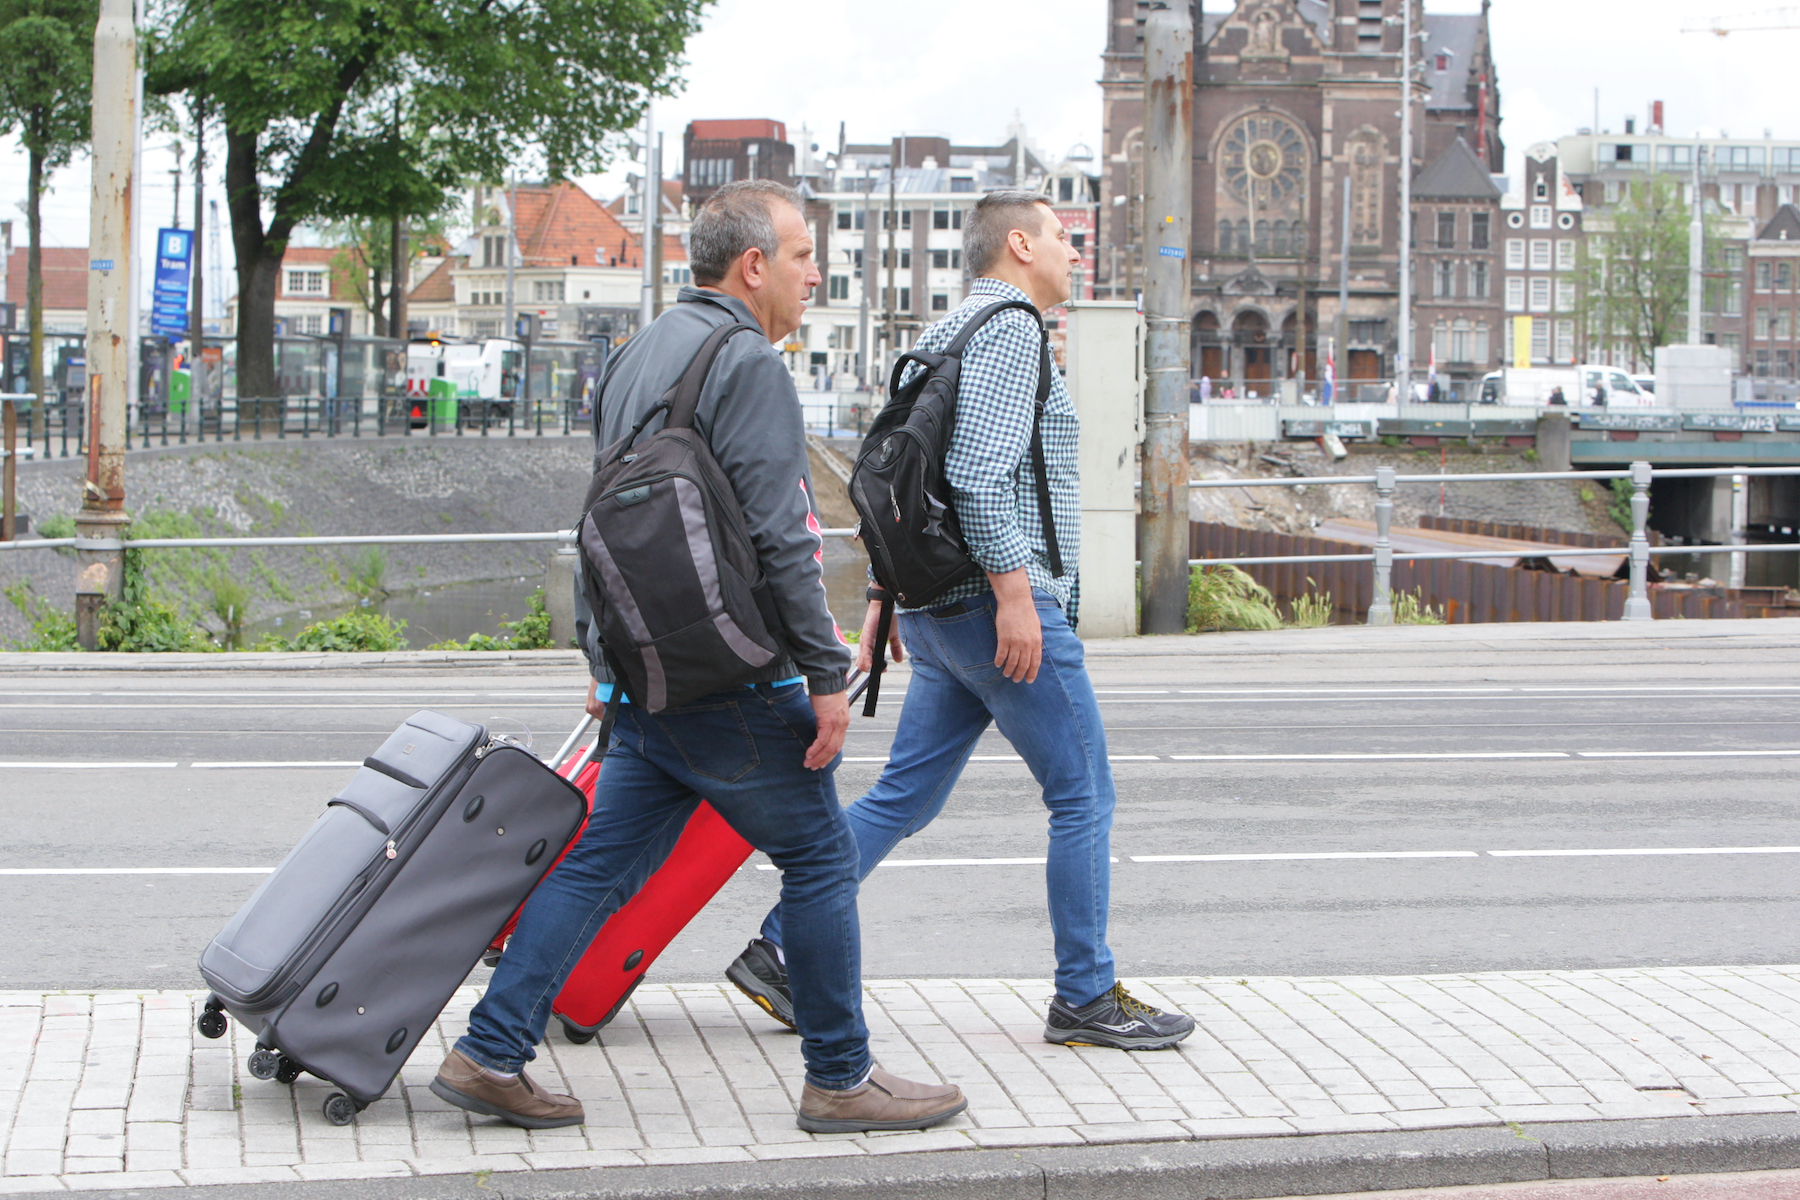 Tourists walking with suitcases in Amsterdam, Netherlands